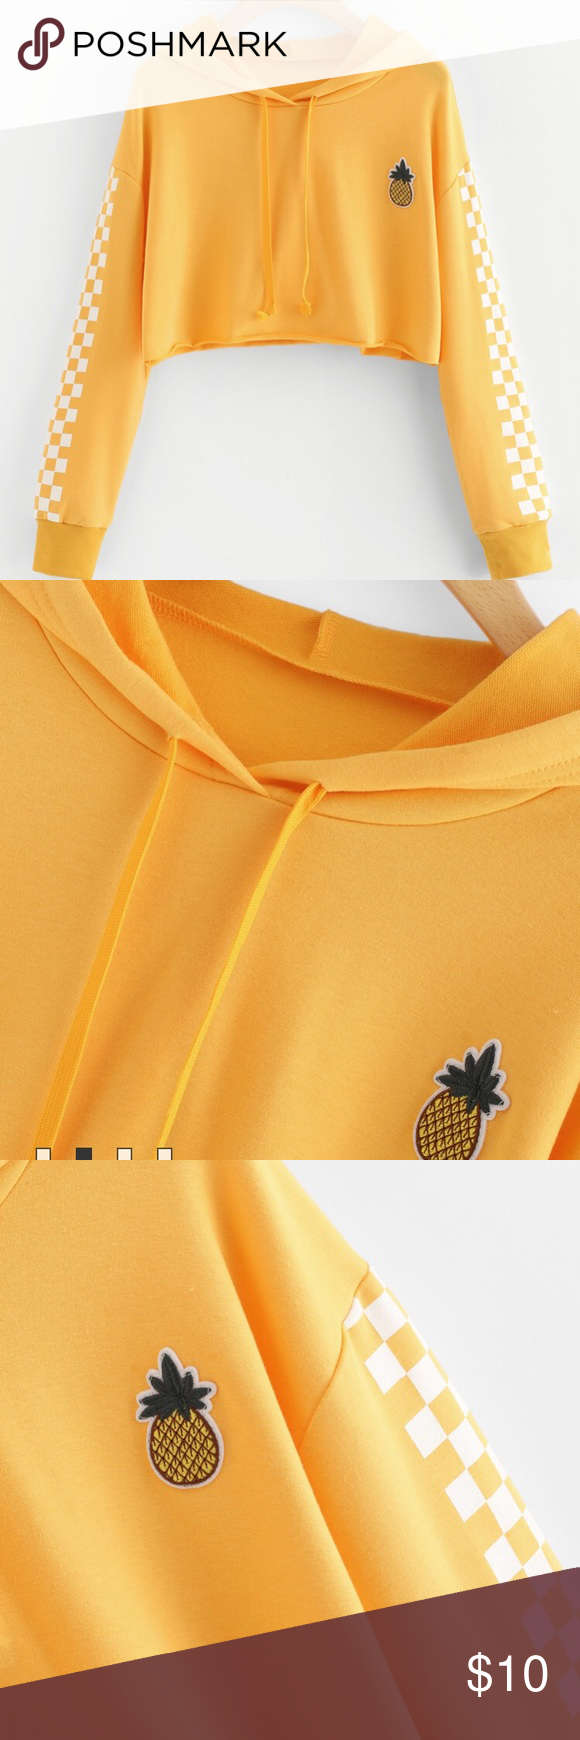 cc511768ea1 Pineapple Embroidered Gingham Crop Hoodie Pineapple Embroidered Gingham  Crop Hoodie $10.59 $27.99 (36) Color: yellow size SML ROMWE Sweaters